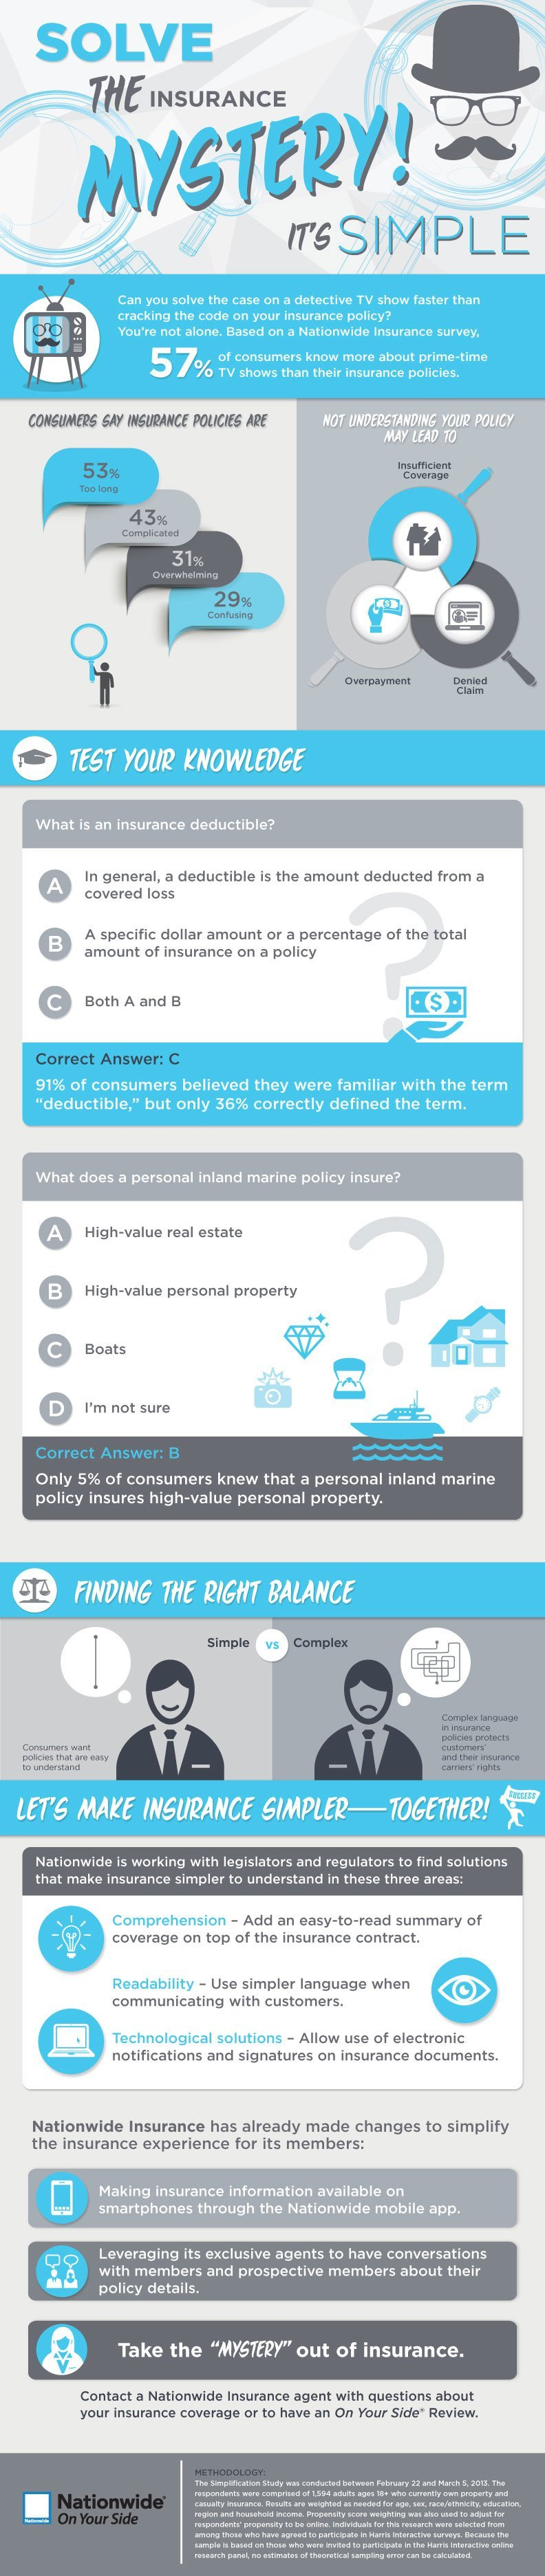 Nationwide Insurance basics infographic